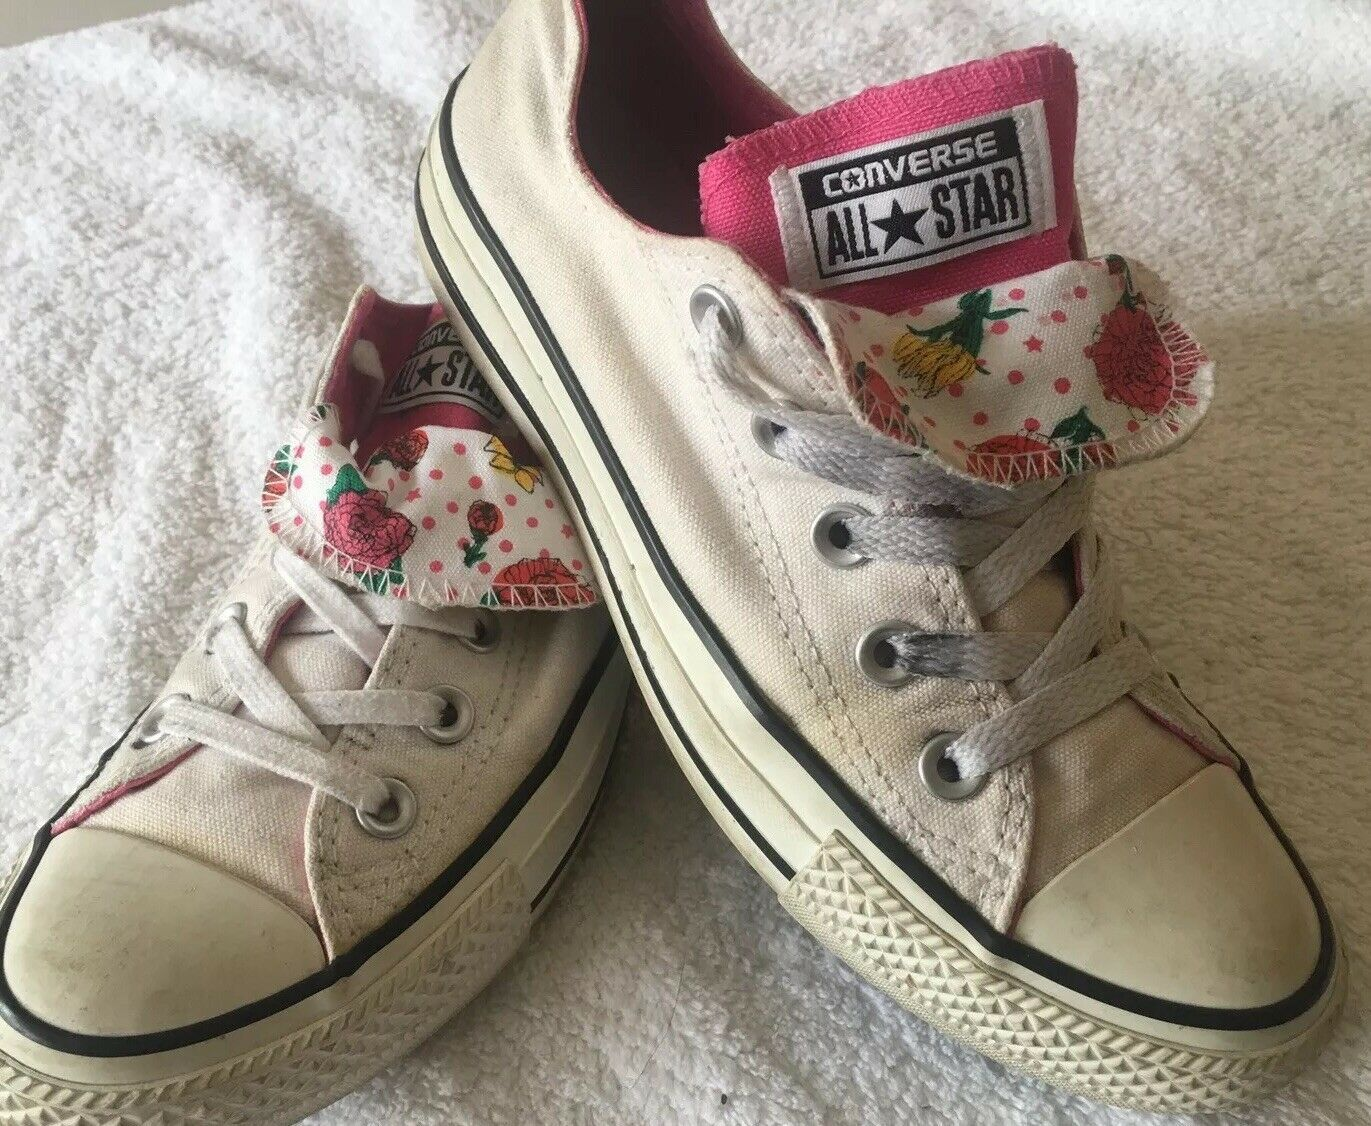 Converse, Womens converse, Sneakers